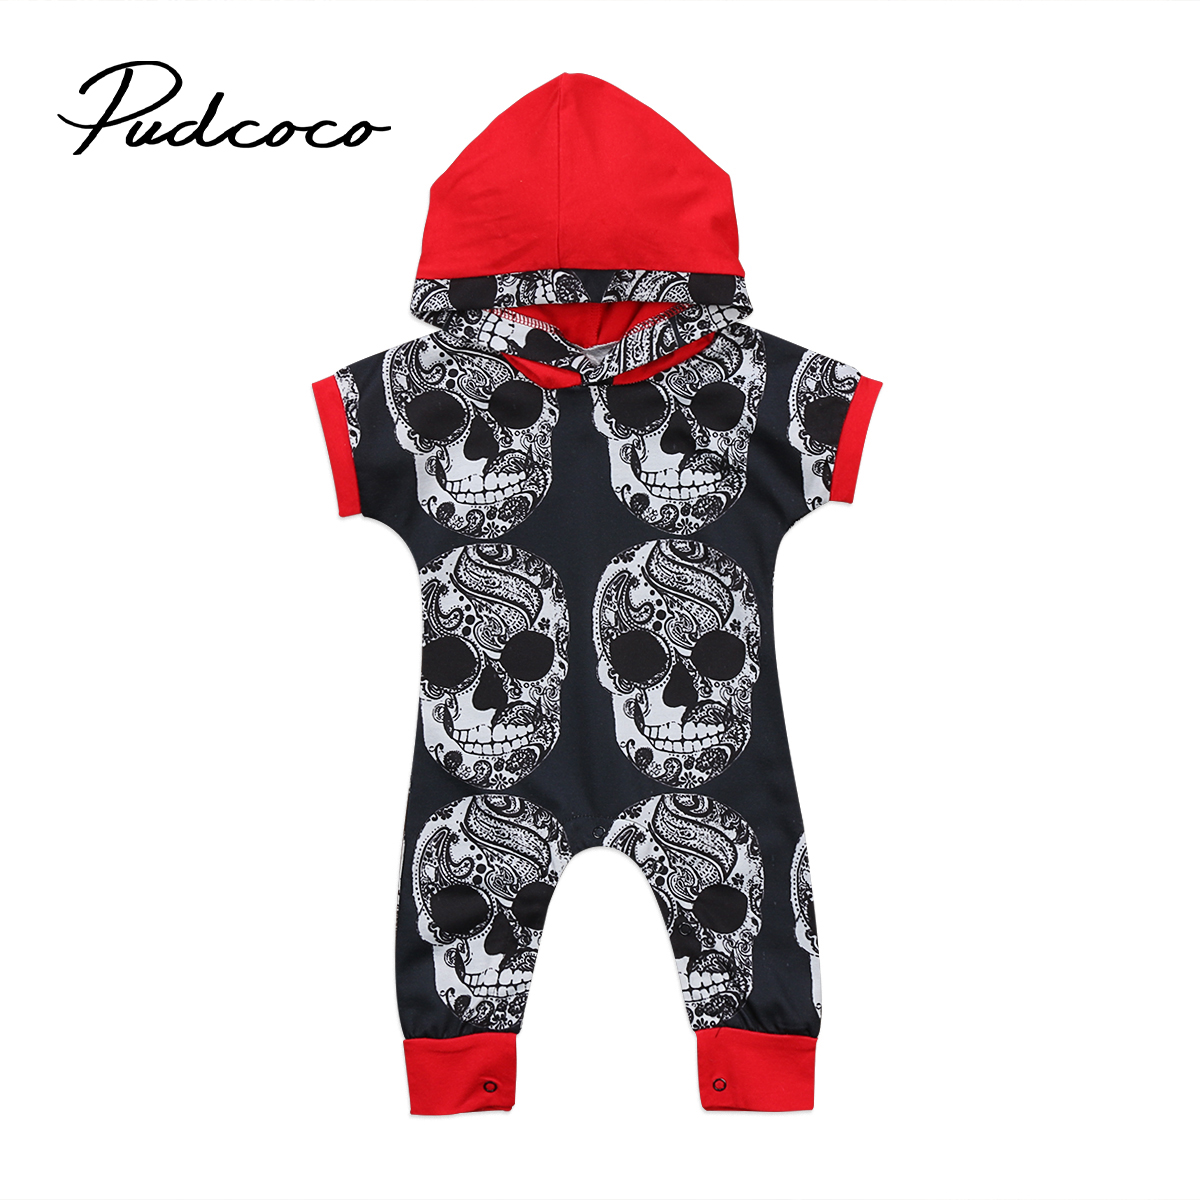 Pudcoco Toddler Kids Baby Boy Halloween Hooded Short Sleeve Pullovers Covered-Button Romper Jumpsuit Outfits Clothes